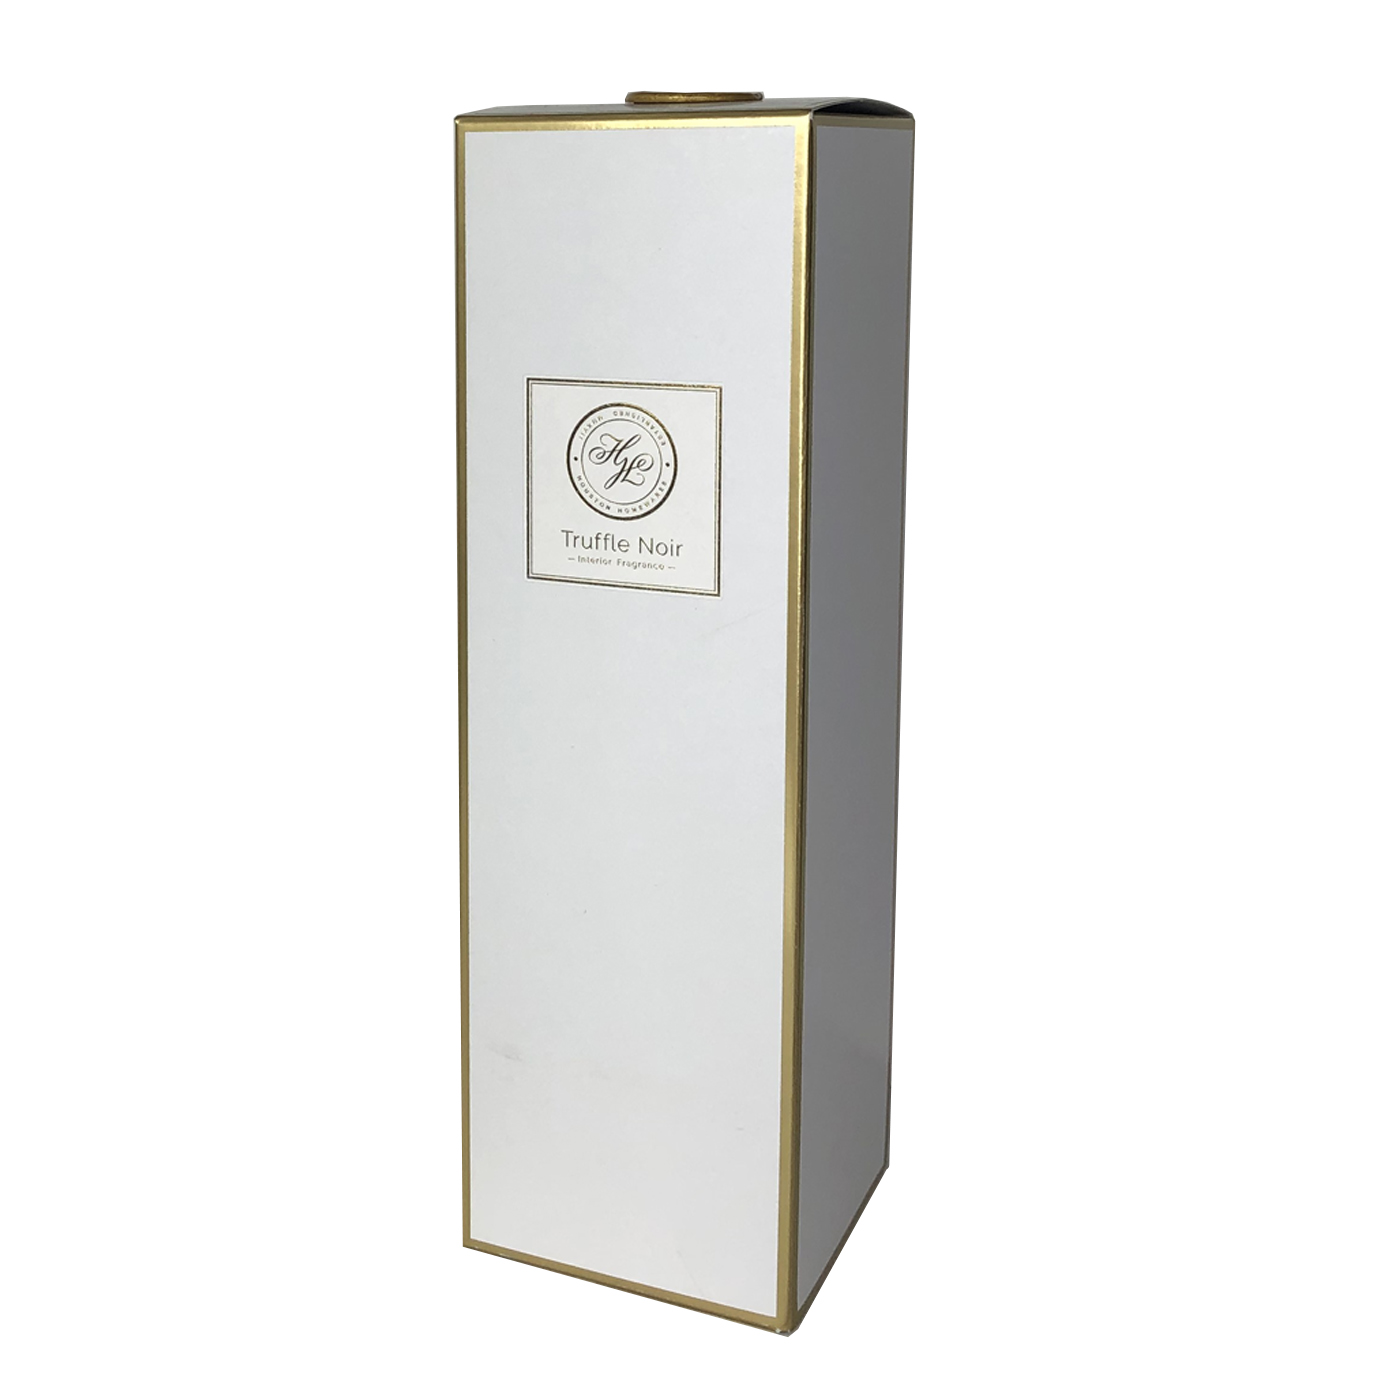 1112 Truffle Noir Reed Diffuser HH interior fragrance